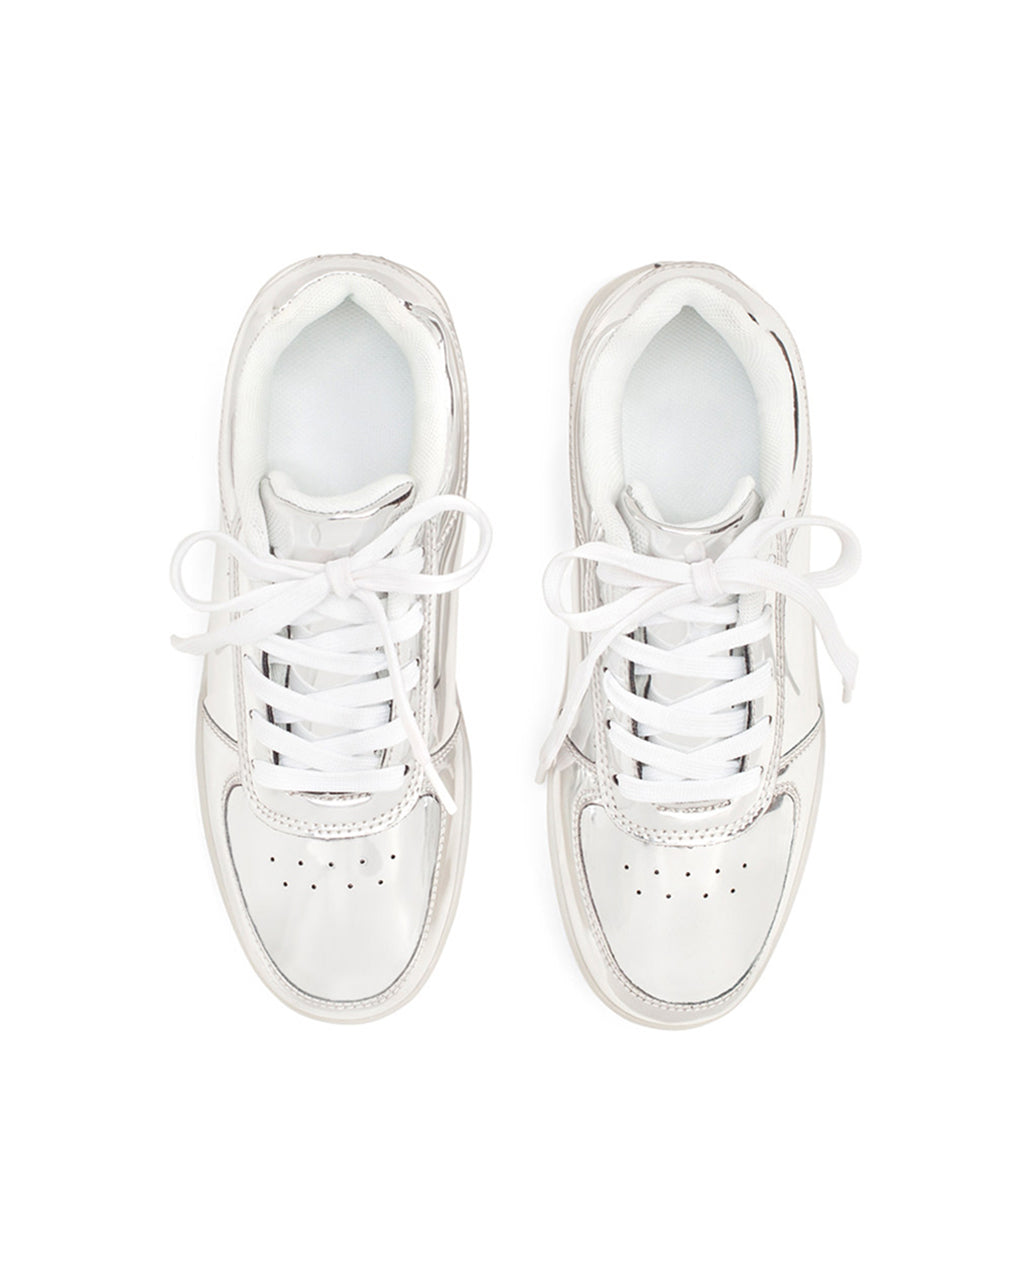 6a9eec32df Silver Light Up Sneakers by party store - shoes - ban.do